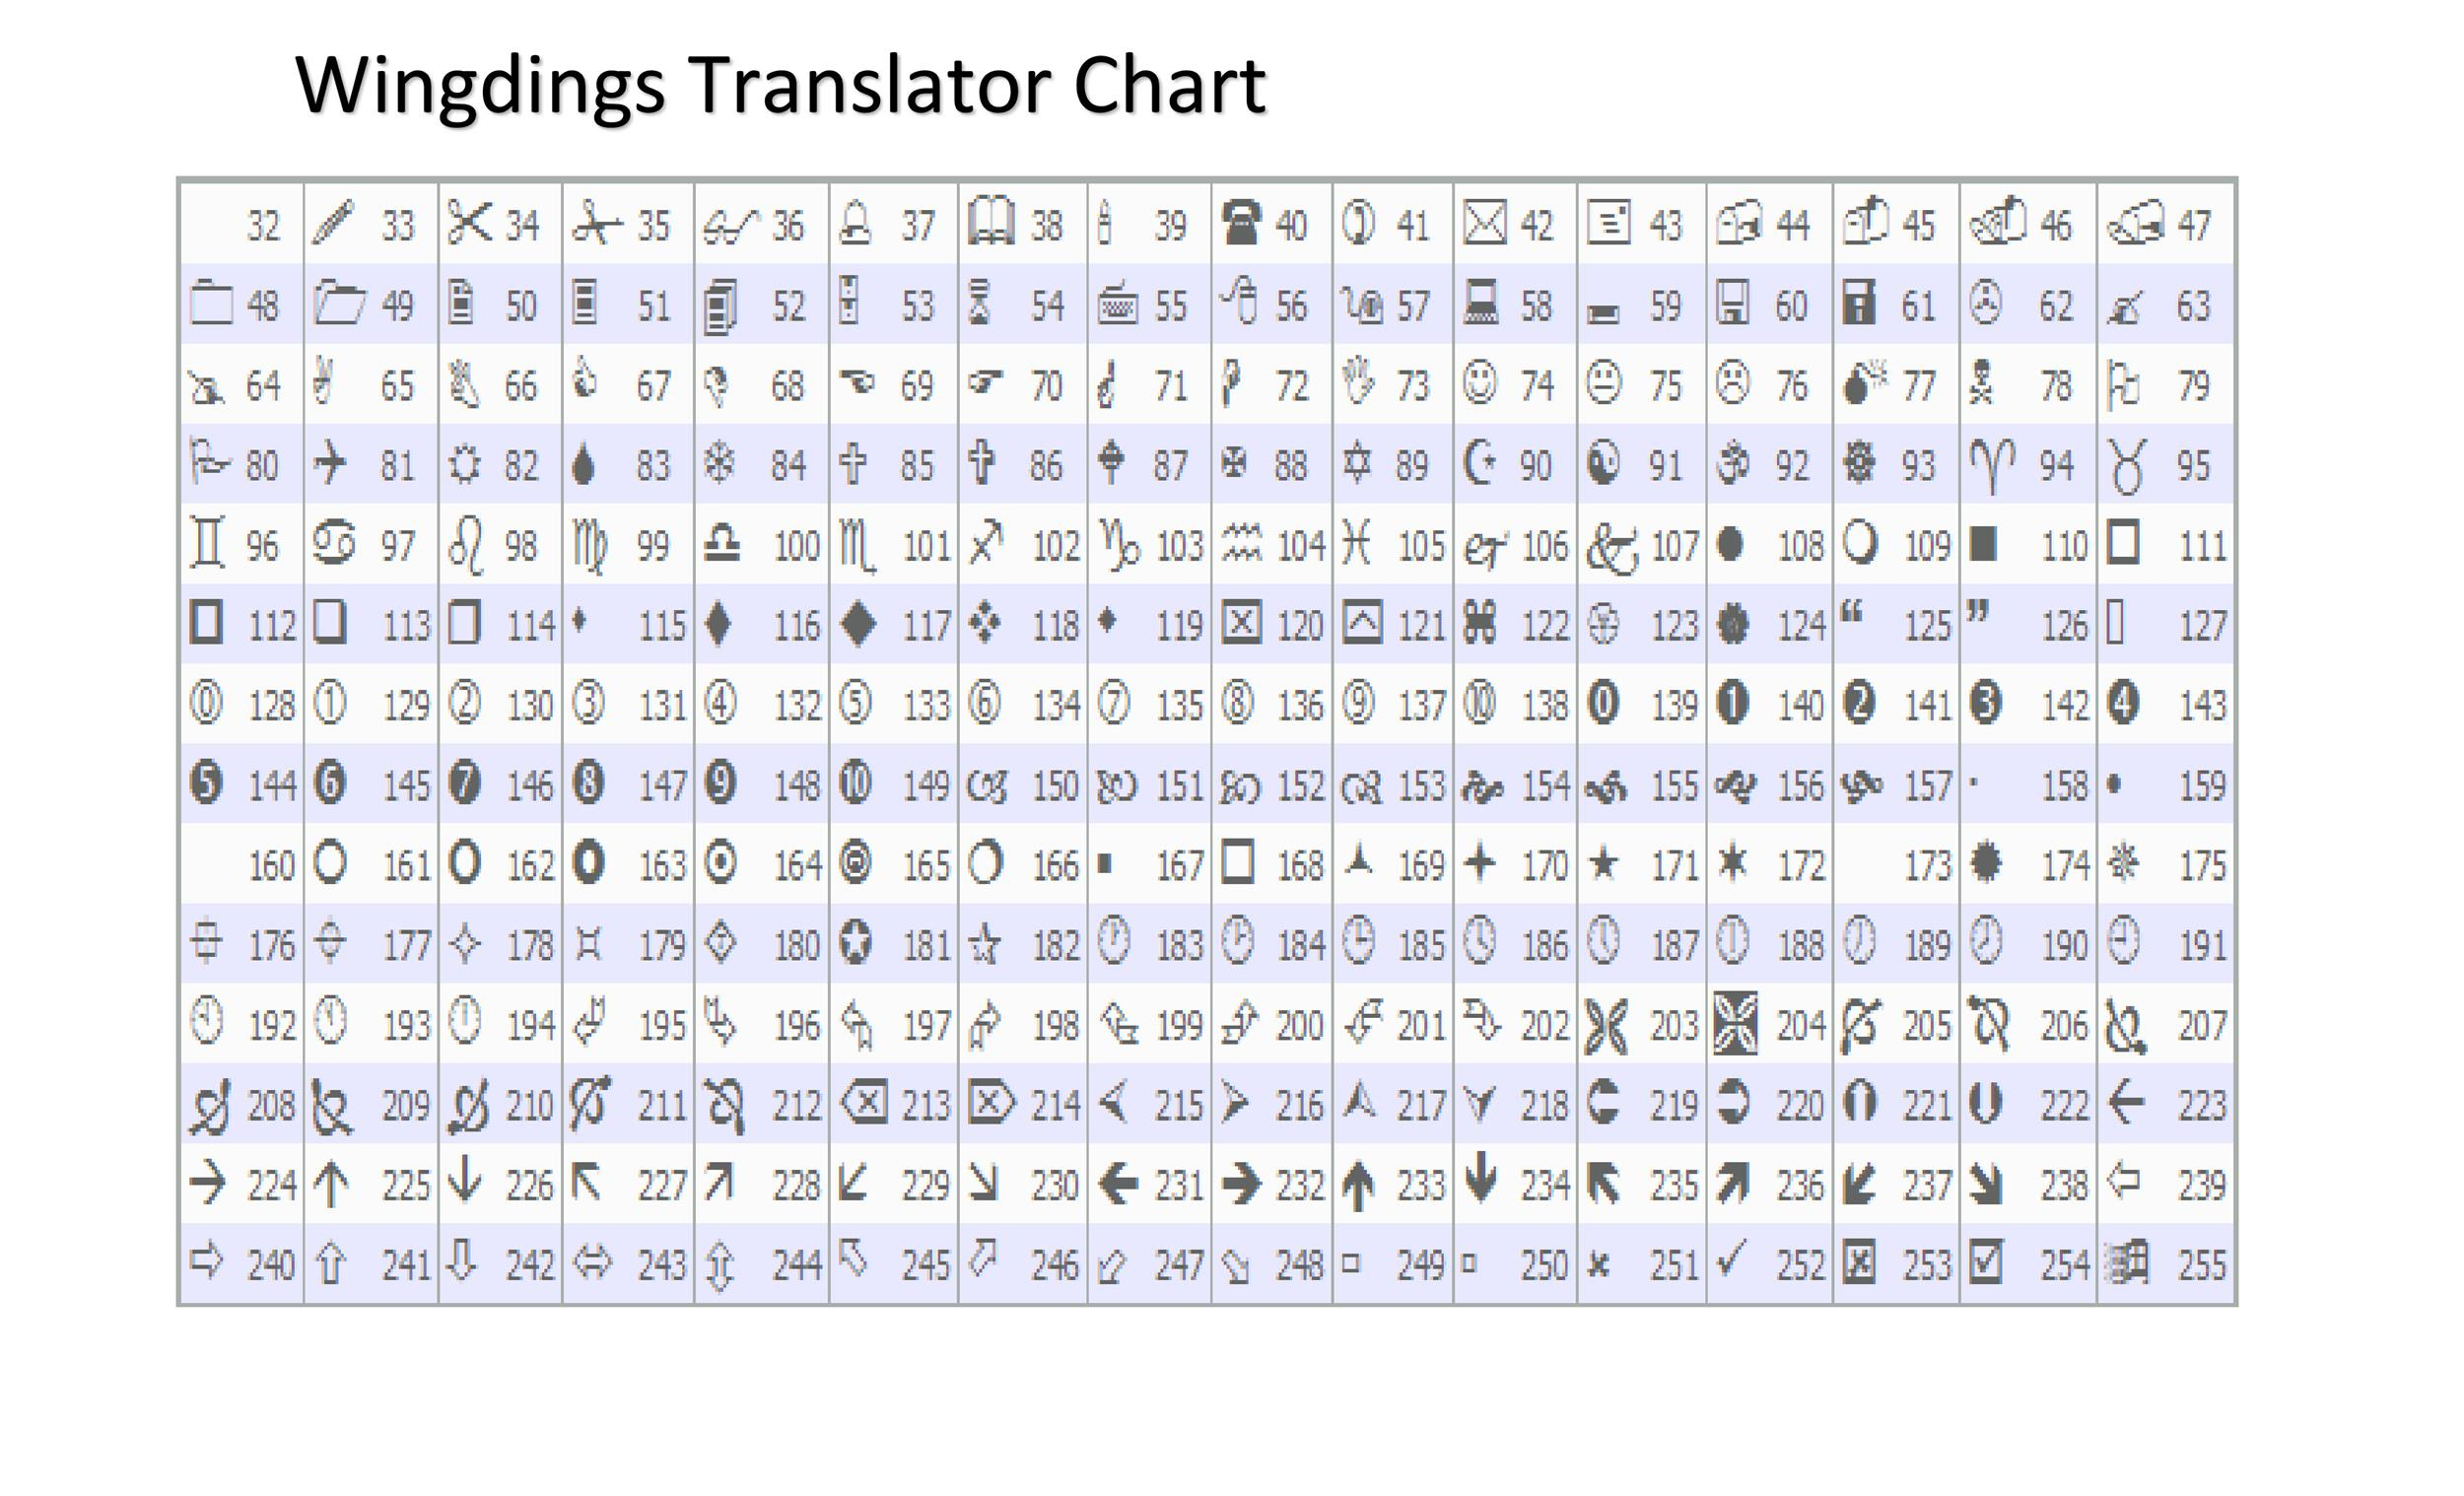 Free wingdings translator template 09